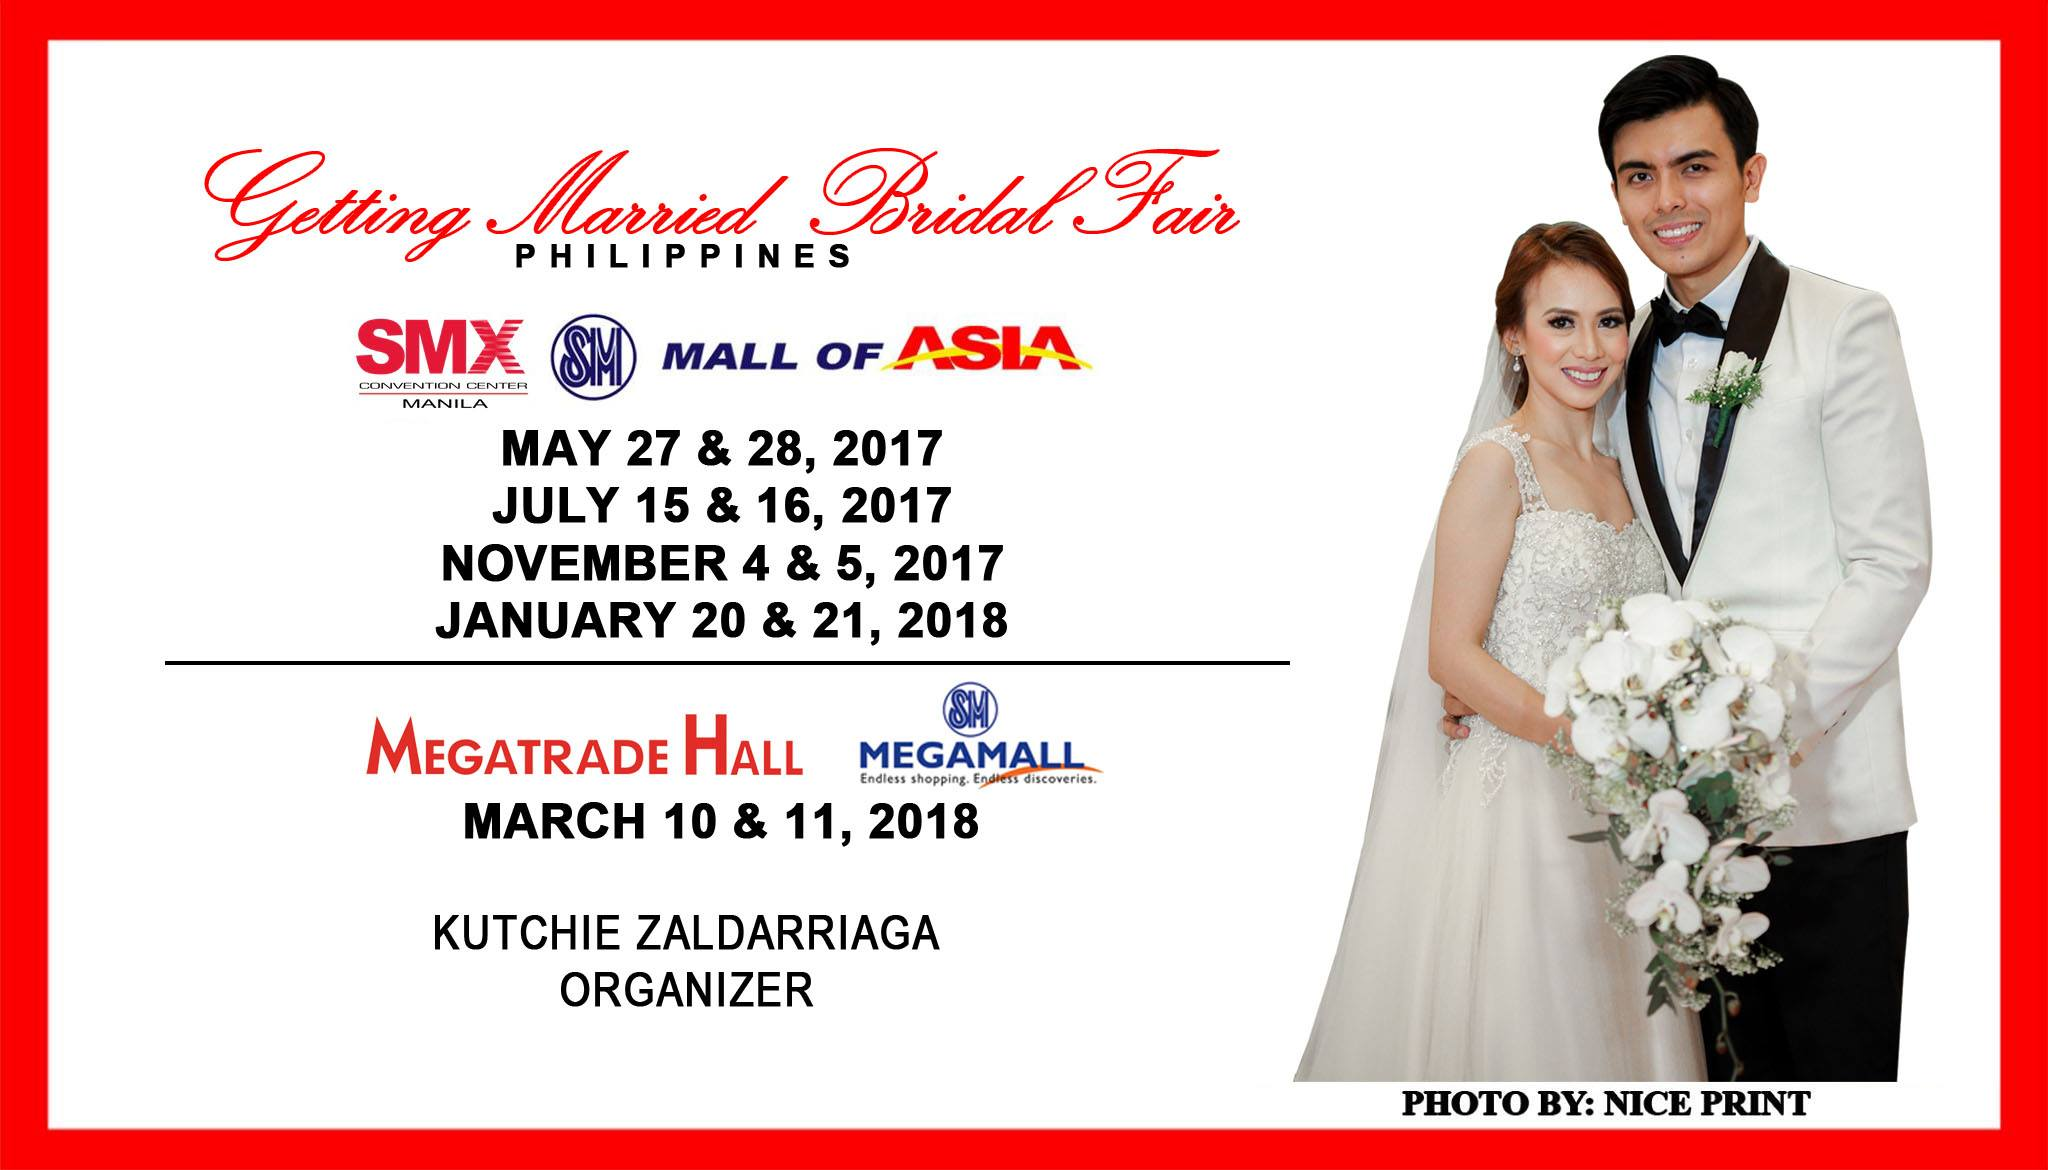 Getting Married Bridal Fair